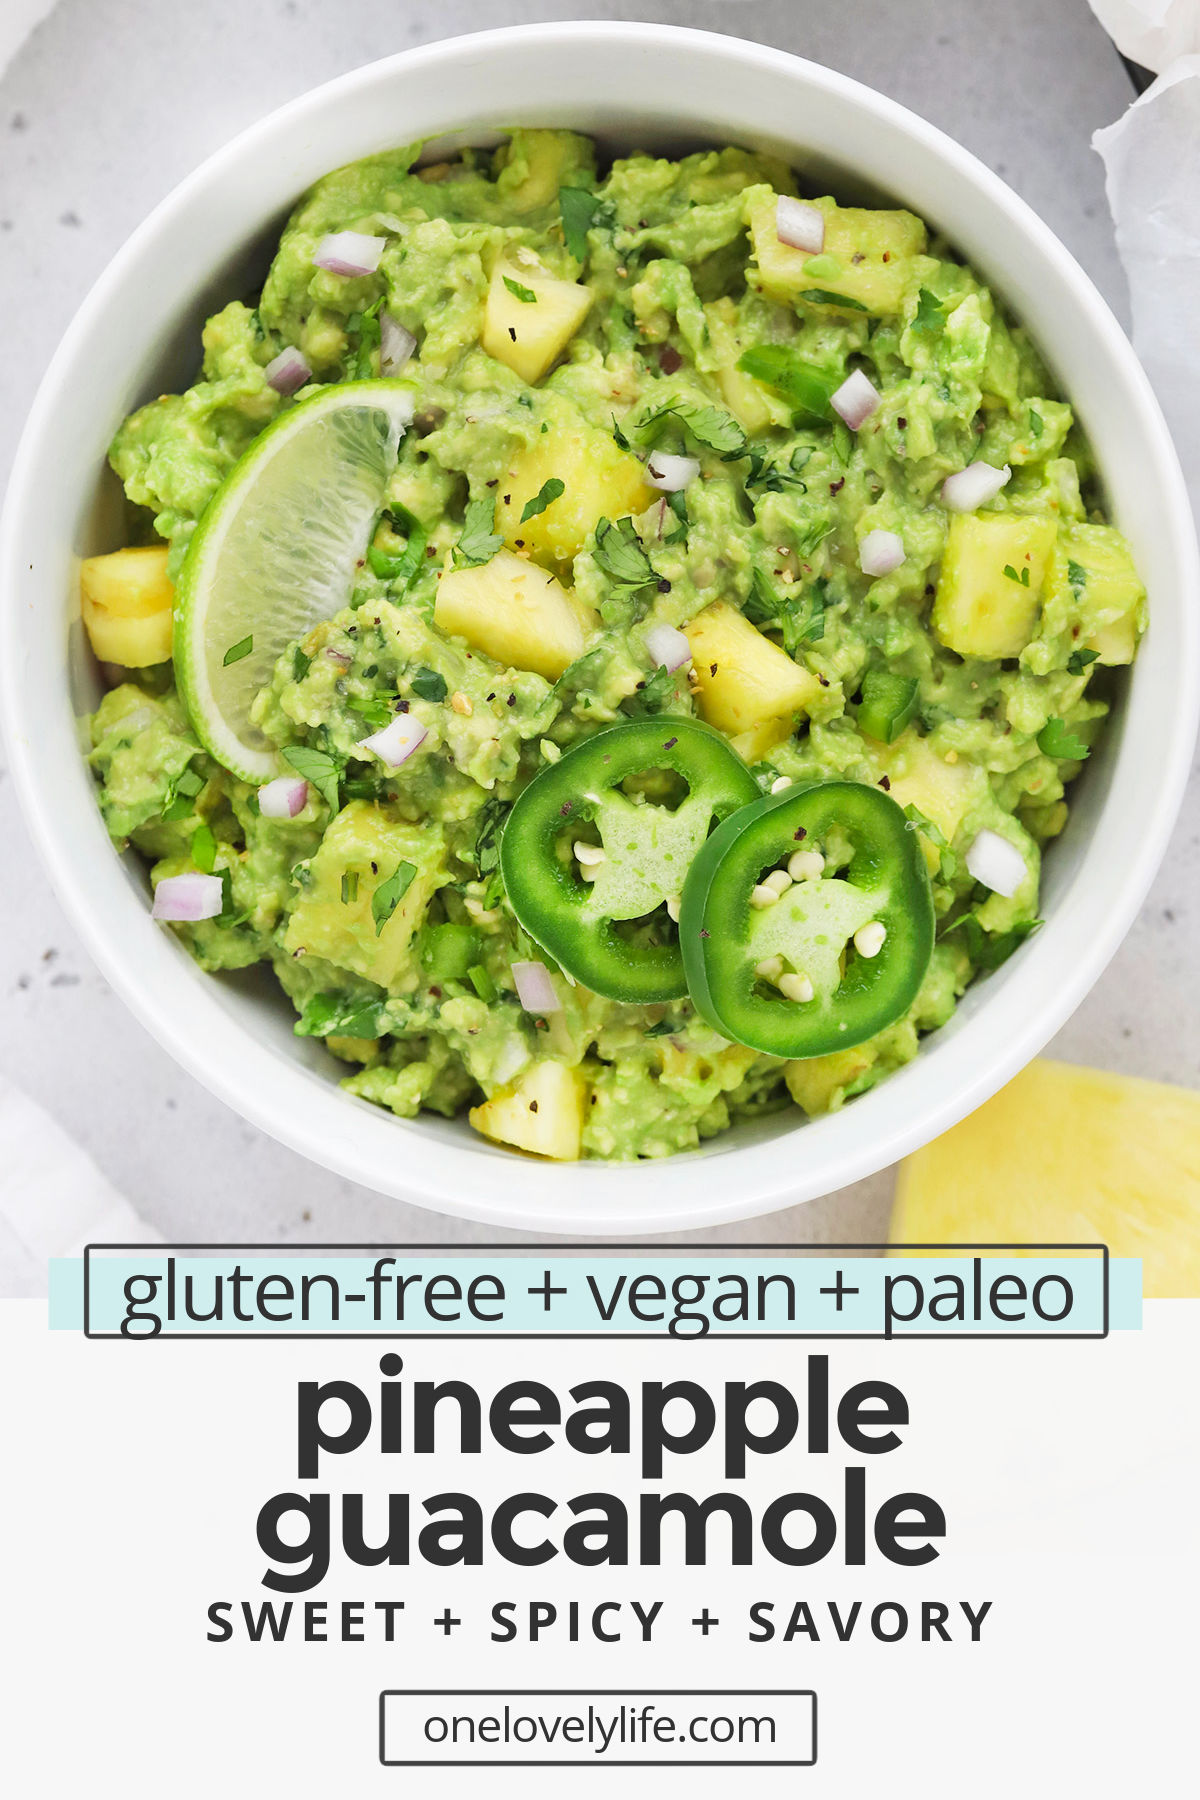 Pineapple Guacamole - Your favorite classic guacamole with a tropical twist! This sweet and spicy guacamole is delicious with all your Tex-Mex faves. Try all our ways to enjoy it below! (Gluten-Free, Paleo, Vegan) // Pineapple guacamole recipe // cinco de mayo // healthy appetizer #guacamole #healthyappetizer #appetizer #glutenfree #pineapple #paleo #vegan #whole30